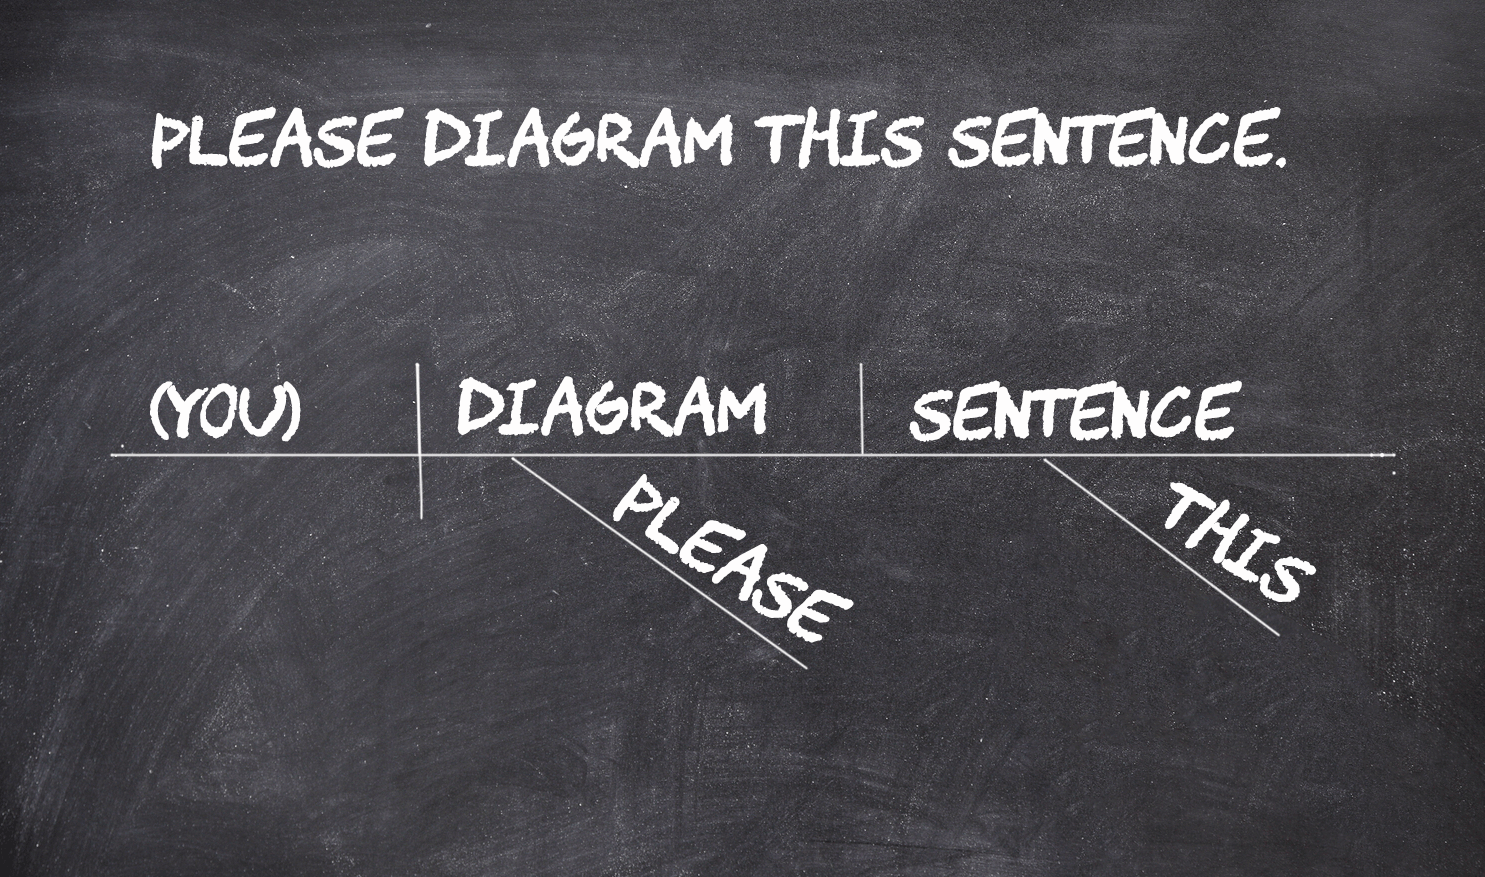 Diagramming Sentences 187 Resources 187 Surfnetkids